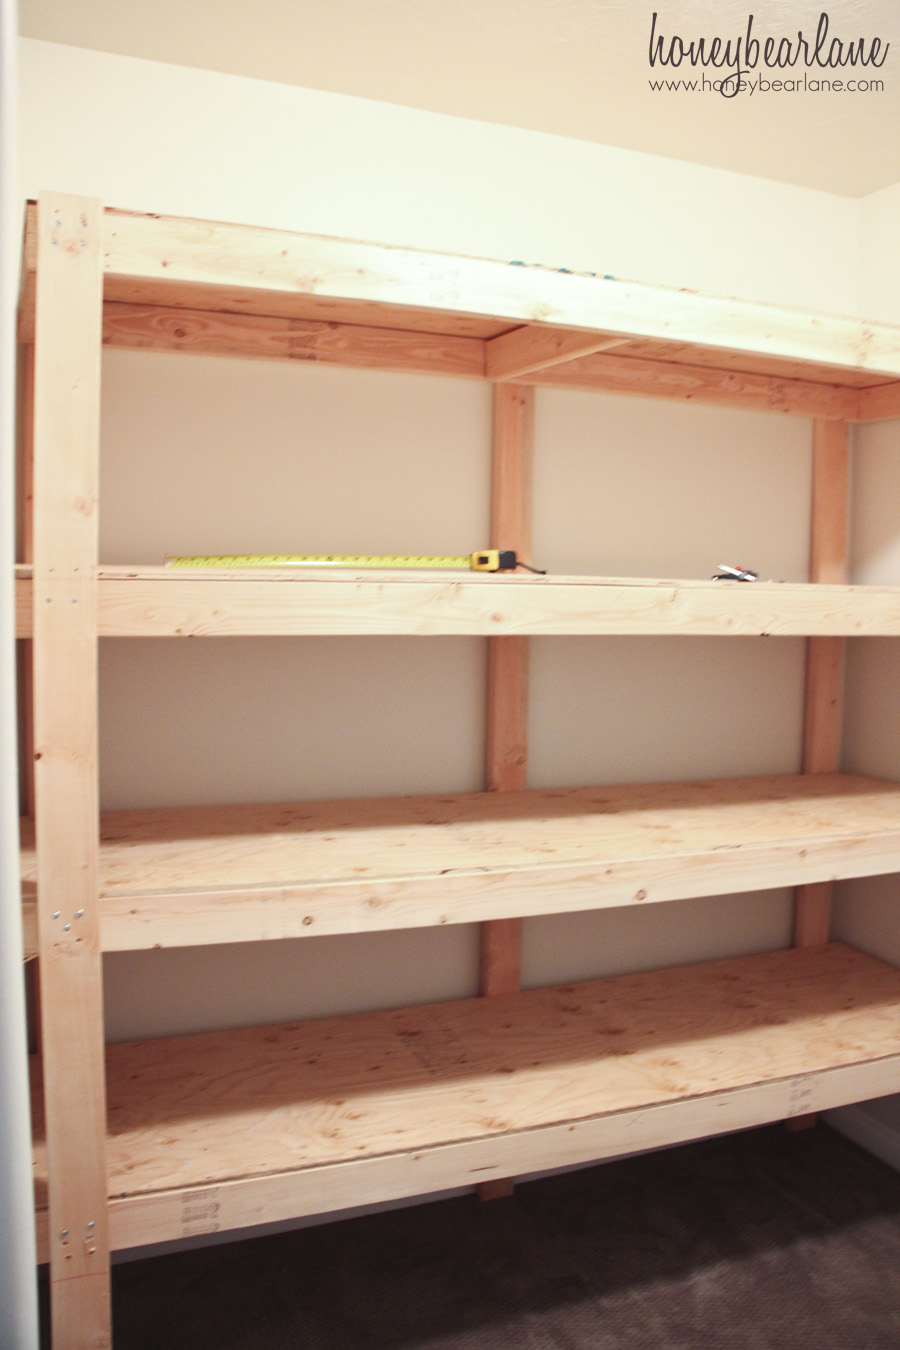 heavy duty storage shelves. Heavy Duty Storage Shelves Repeat This Process With The Other Three Making Sure Gap In Between Is 16u2033 Top Shelf Should Be Flush L